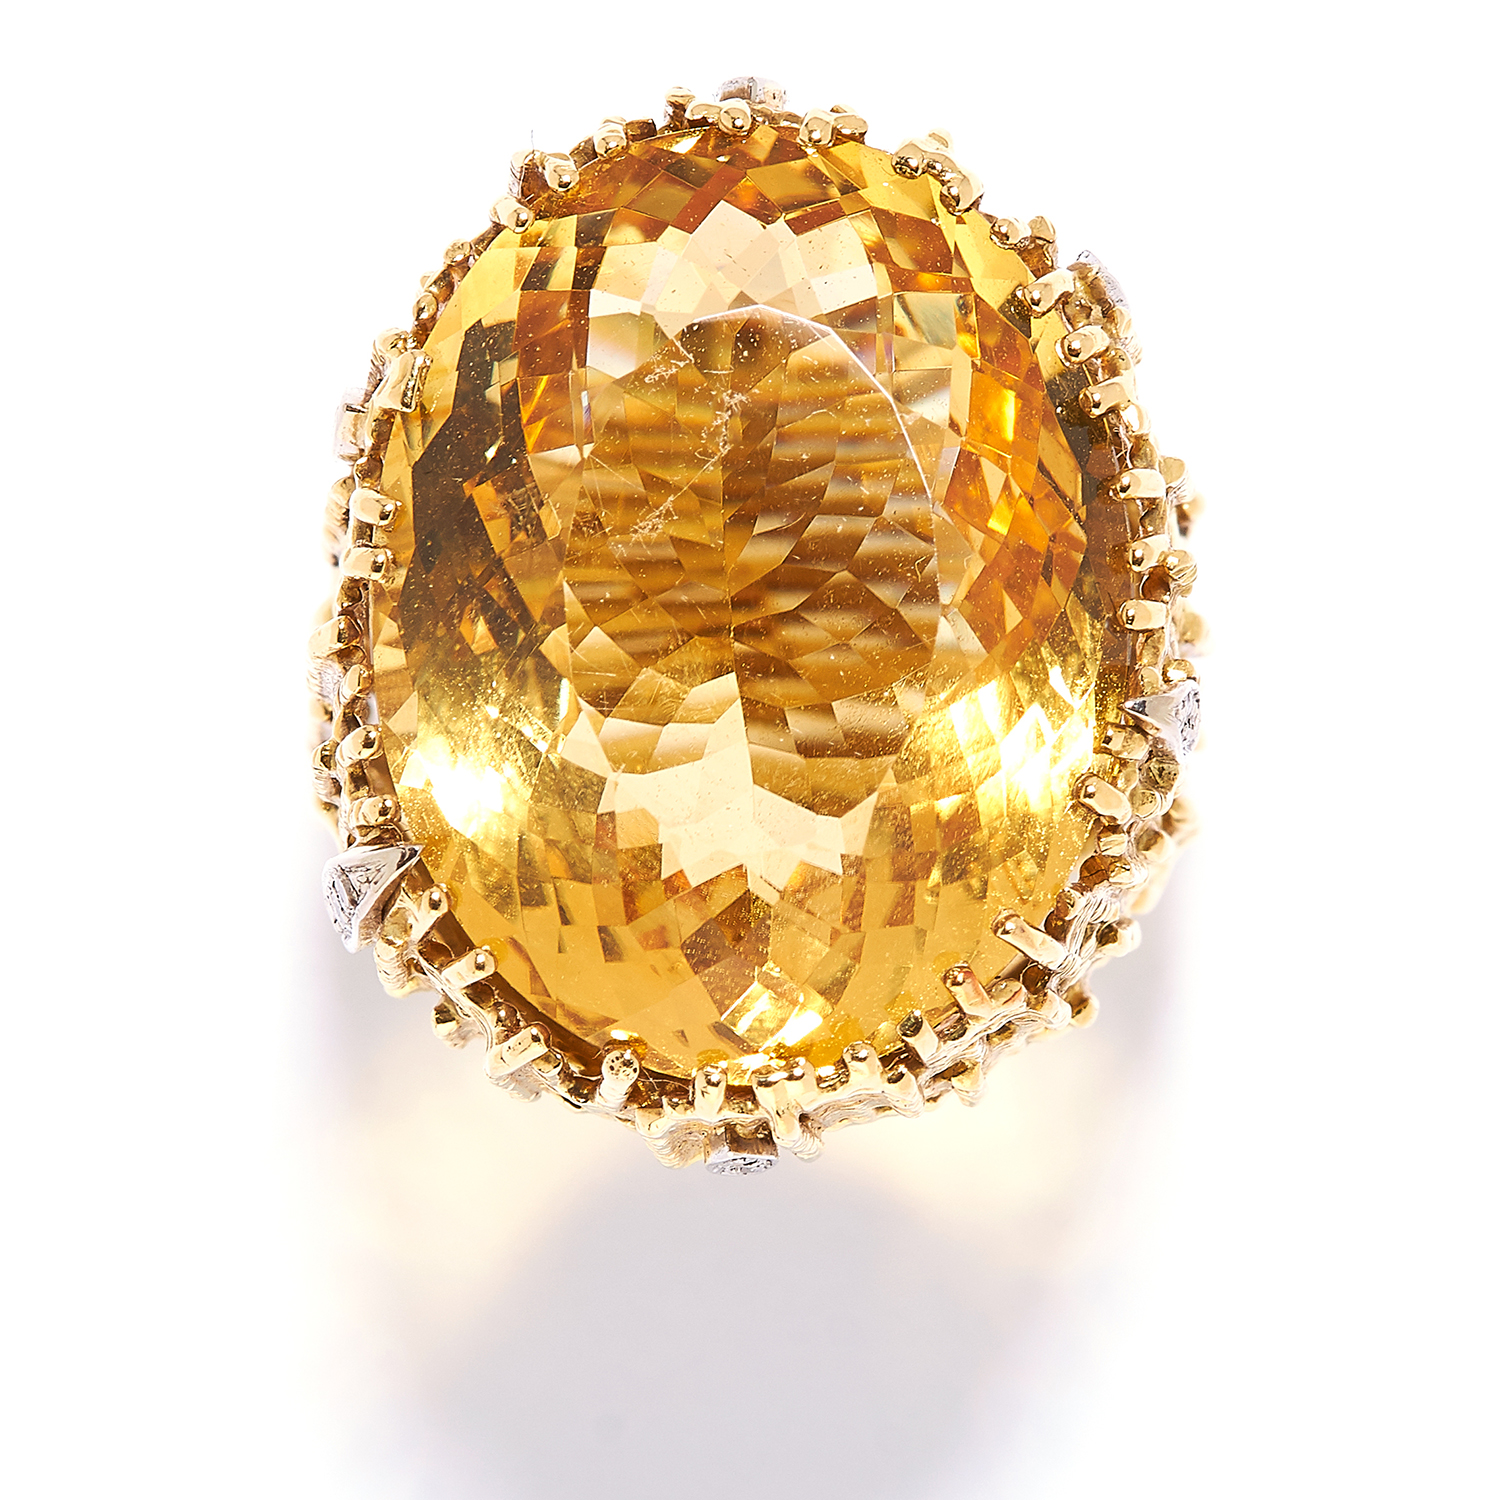 CITRINE AND DIAMOND RING, GRIMA, CIRCA 1972, in 18ct yellow gold, set with an oval cut citrine in